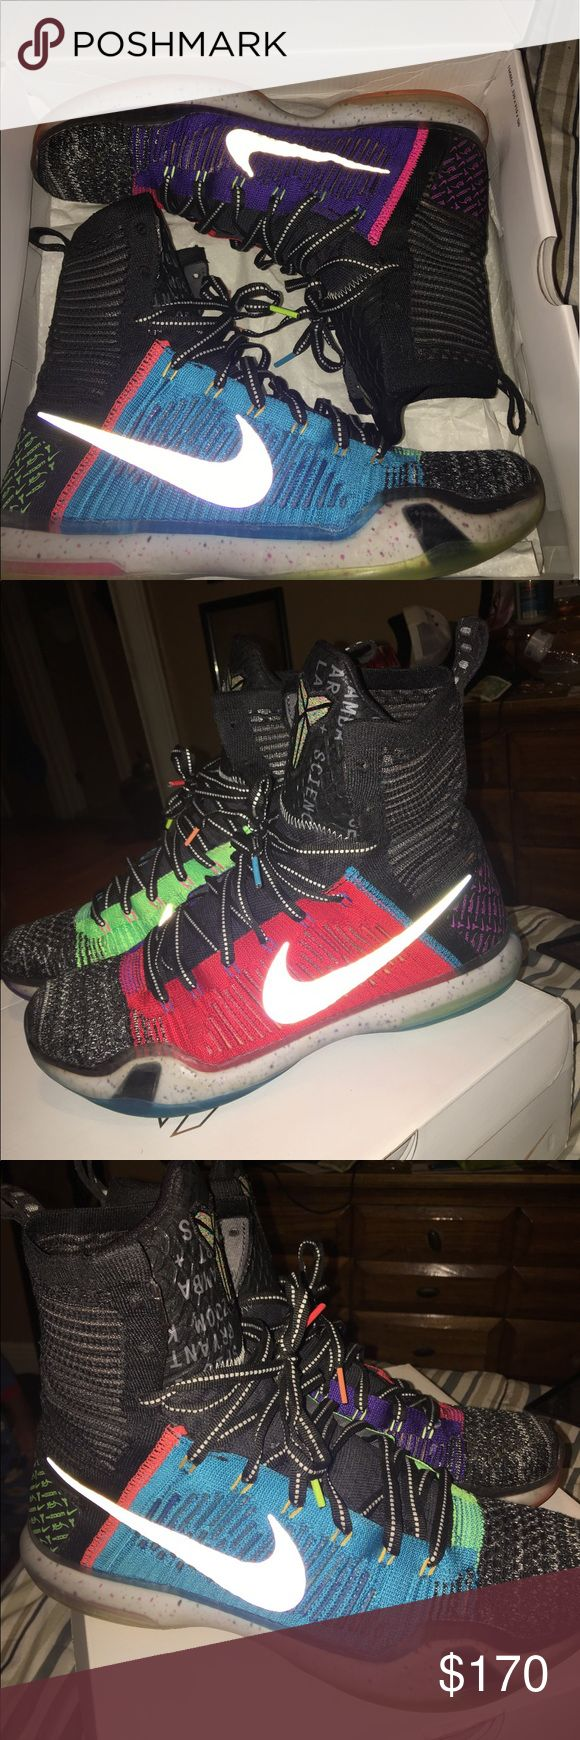 Nike What The Kobe 10 Great condition worn about 5 times no major flaws Nike Shoes Sneakers